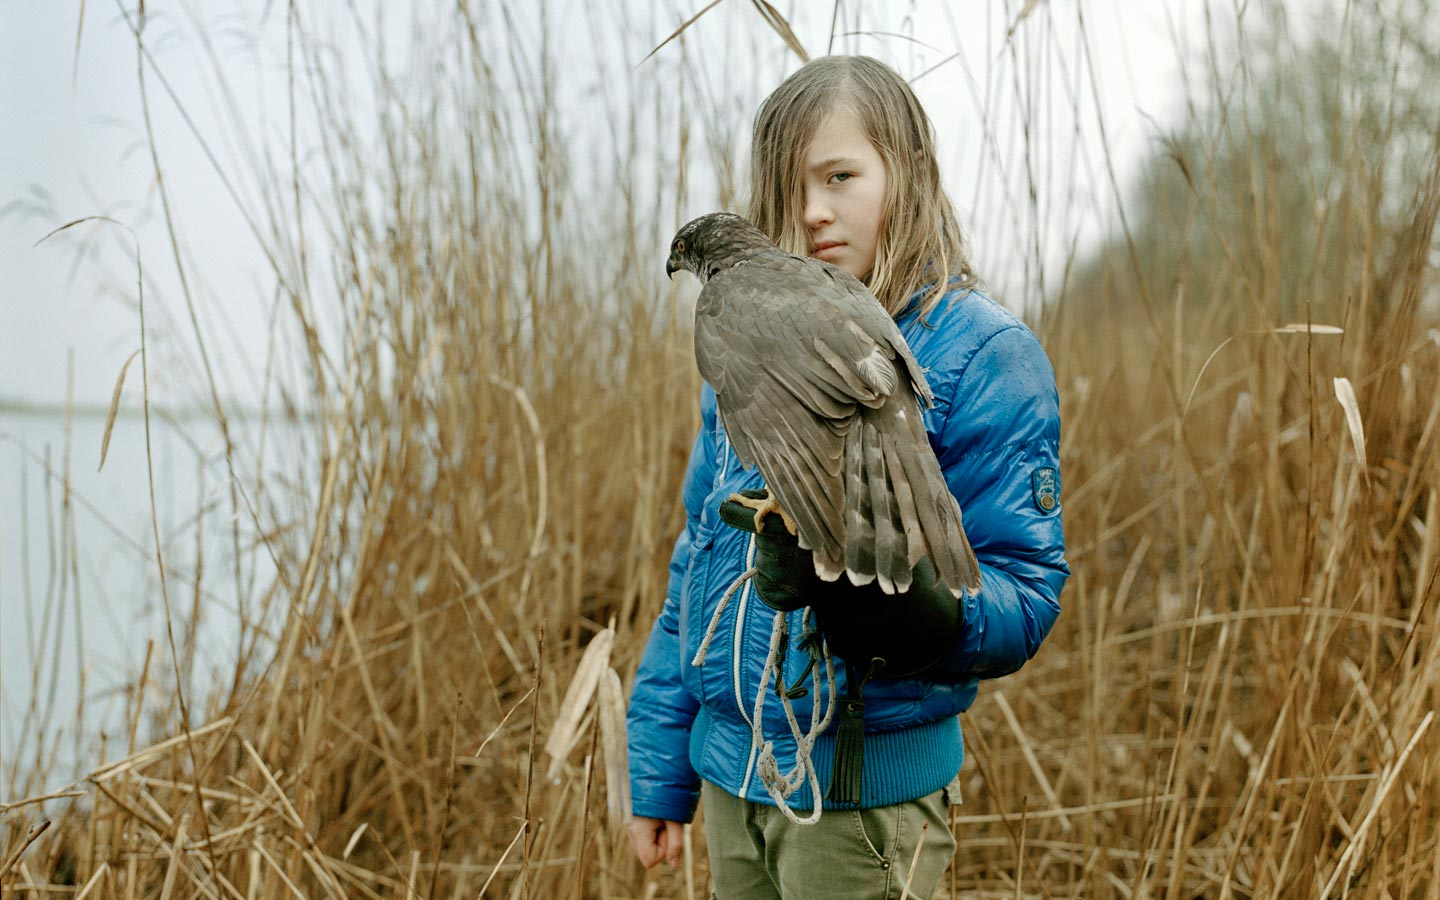 FotoFirst —Loek Buter Portrays Young Falconers and Their Birds of Prey